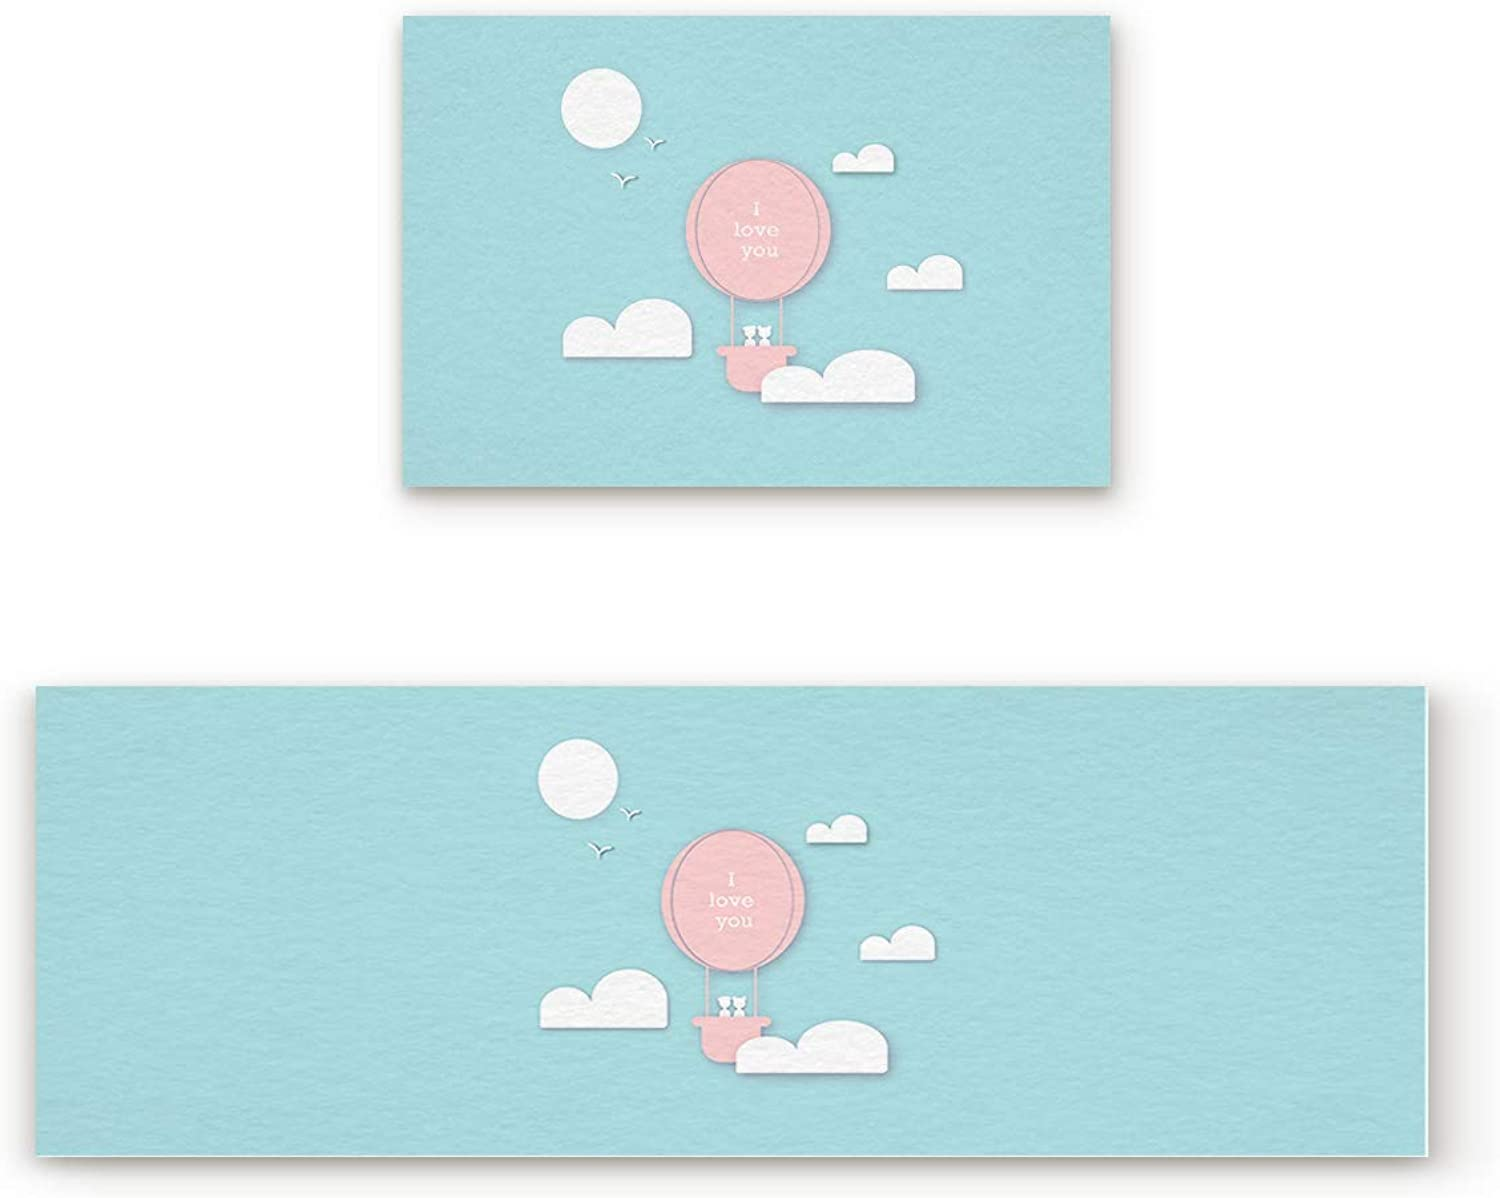 Aomike 2 Piece Non-Slip Kitchen Mat Rubber Backing Doormat Romantic Pink Hot Air Balloon bluee Sky Runner Rug Set, Hallway Living Room Balcony Bathroom Carpet Sets (19.7  x 31.5 +19.7  x 47.2 )